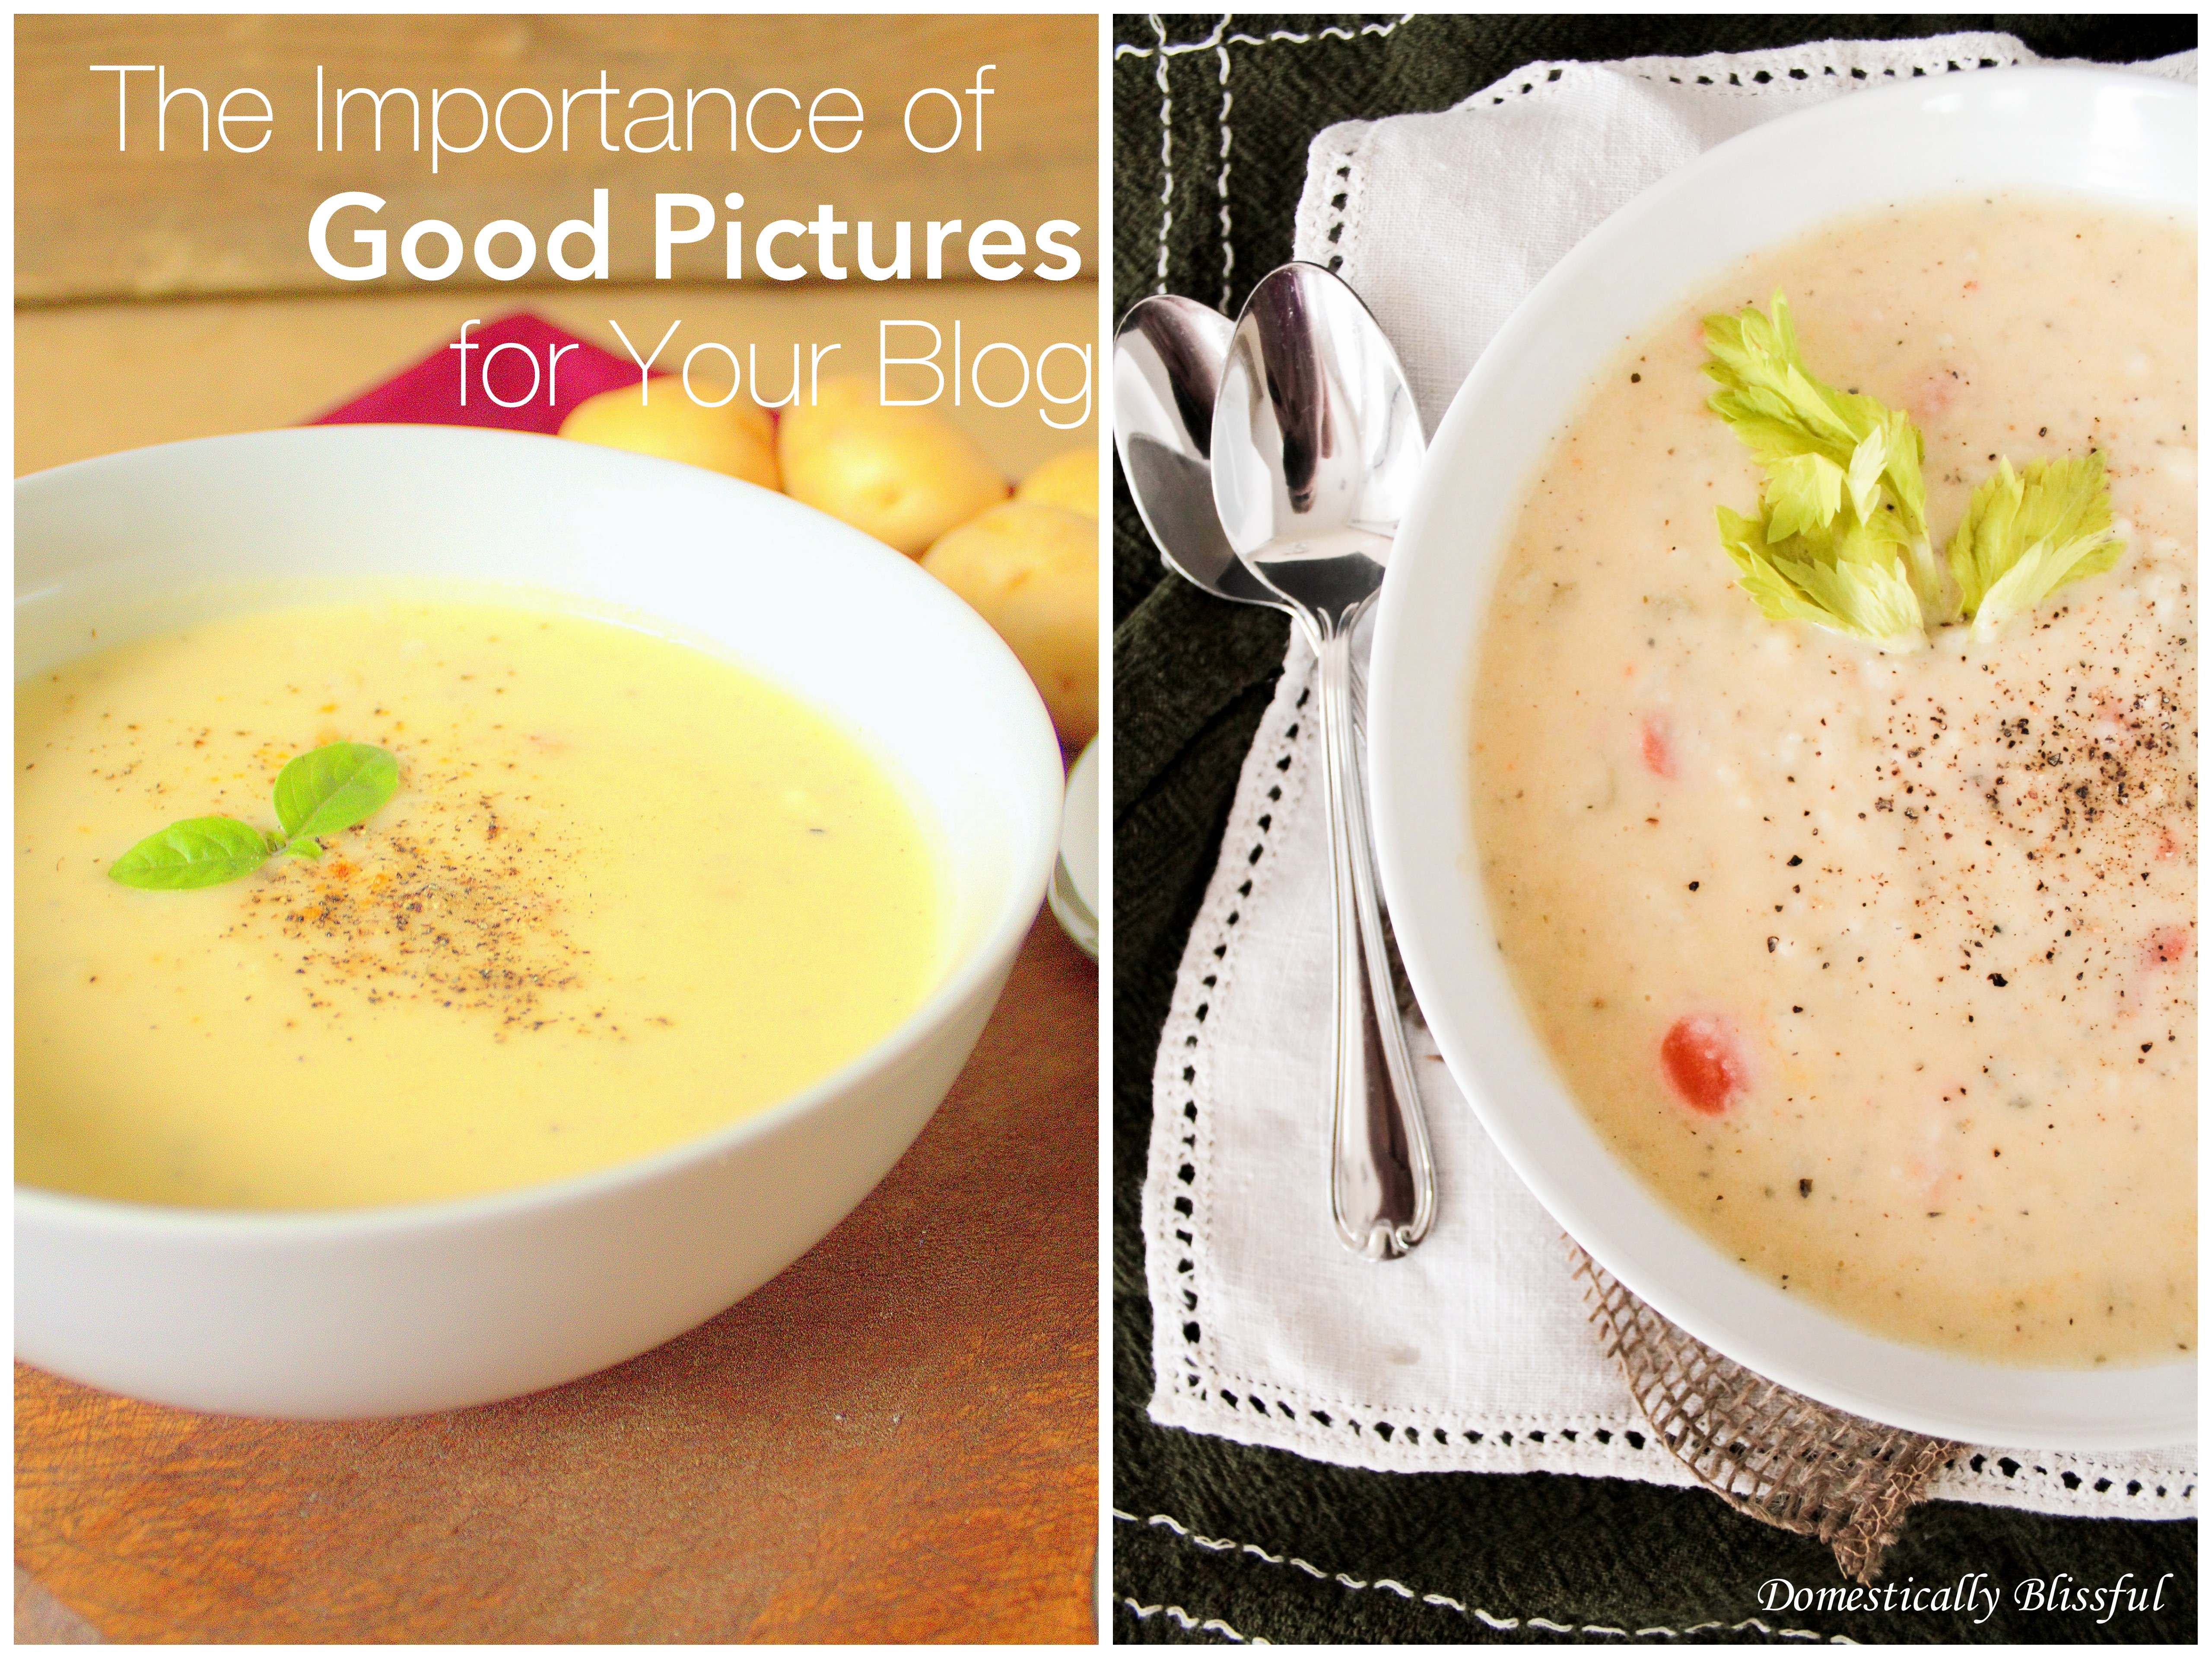 The Importance of Good Pictures for Your Blog